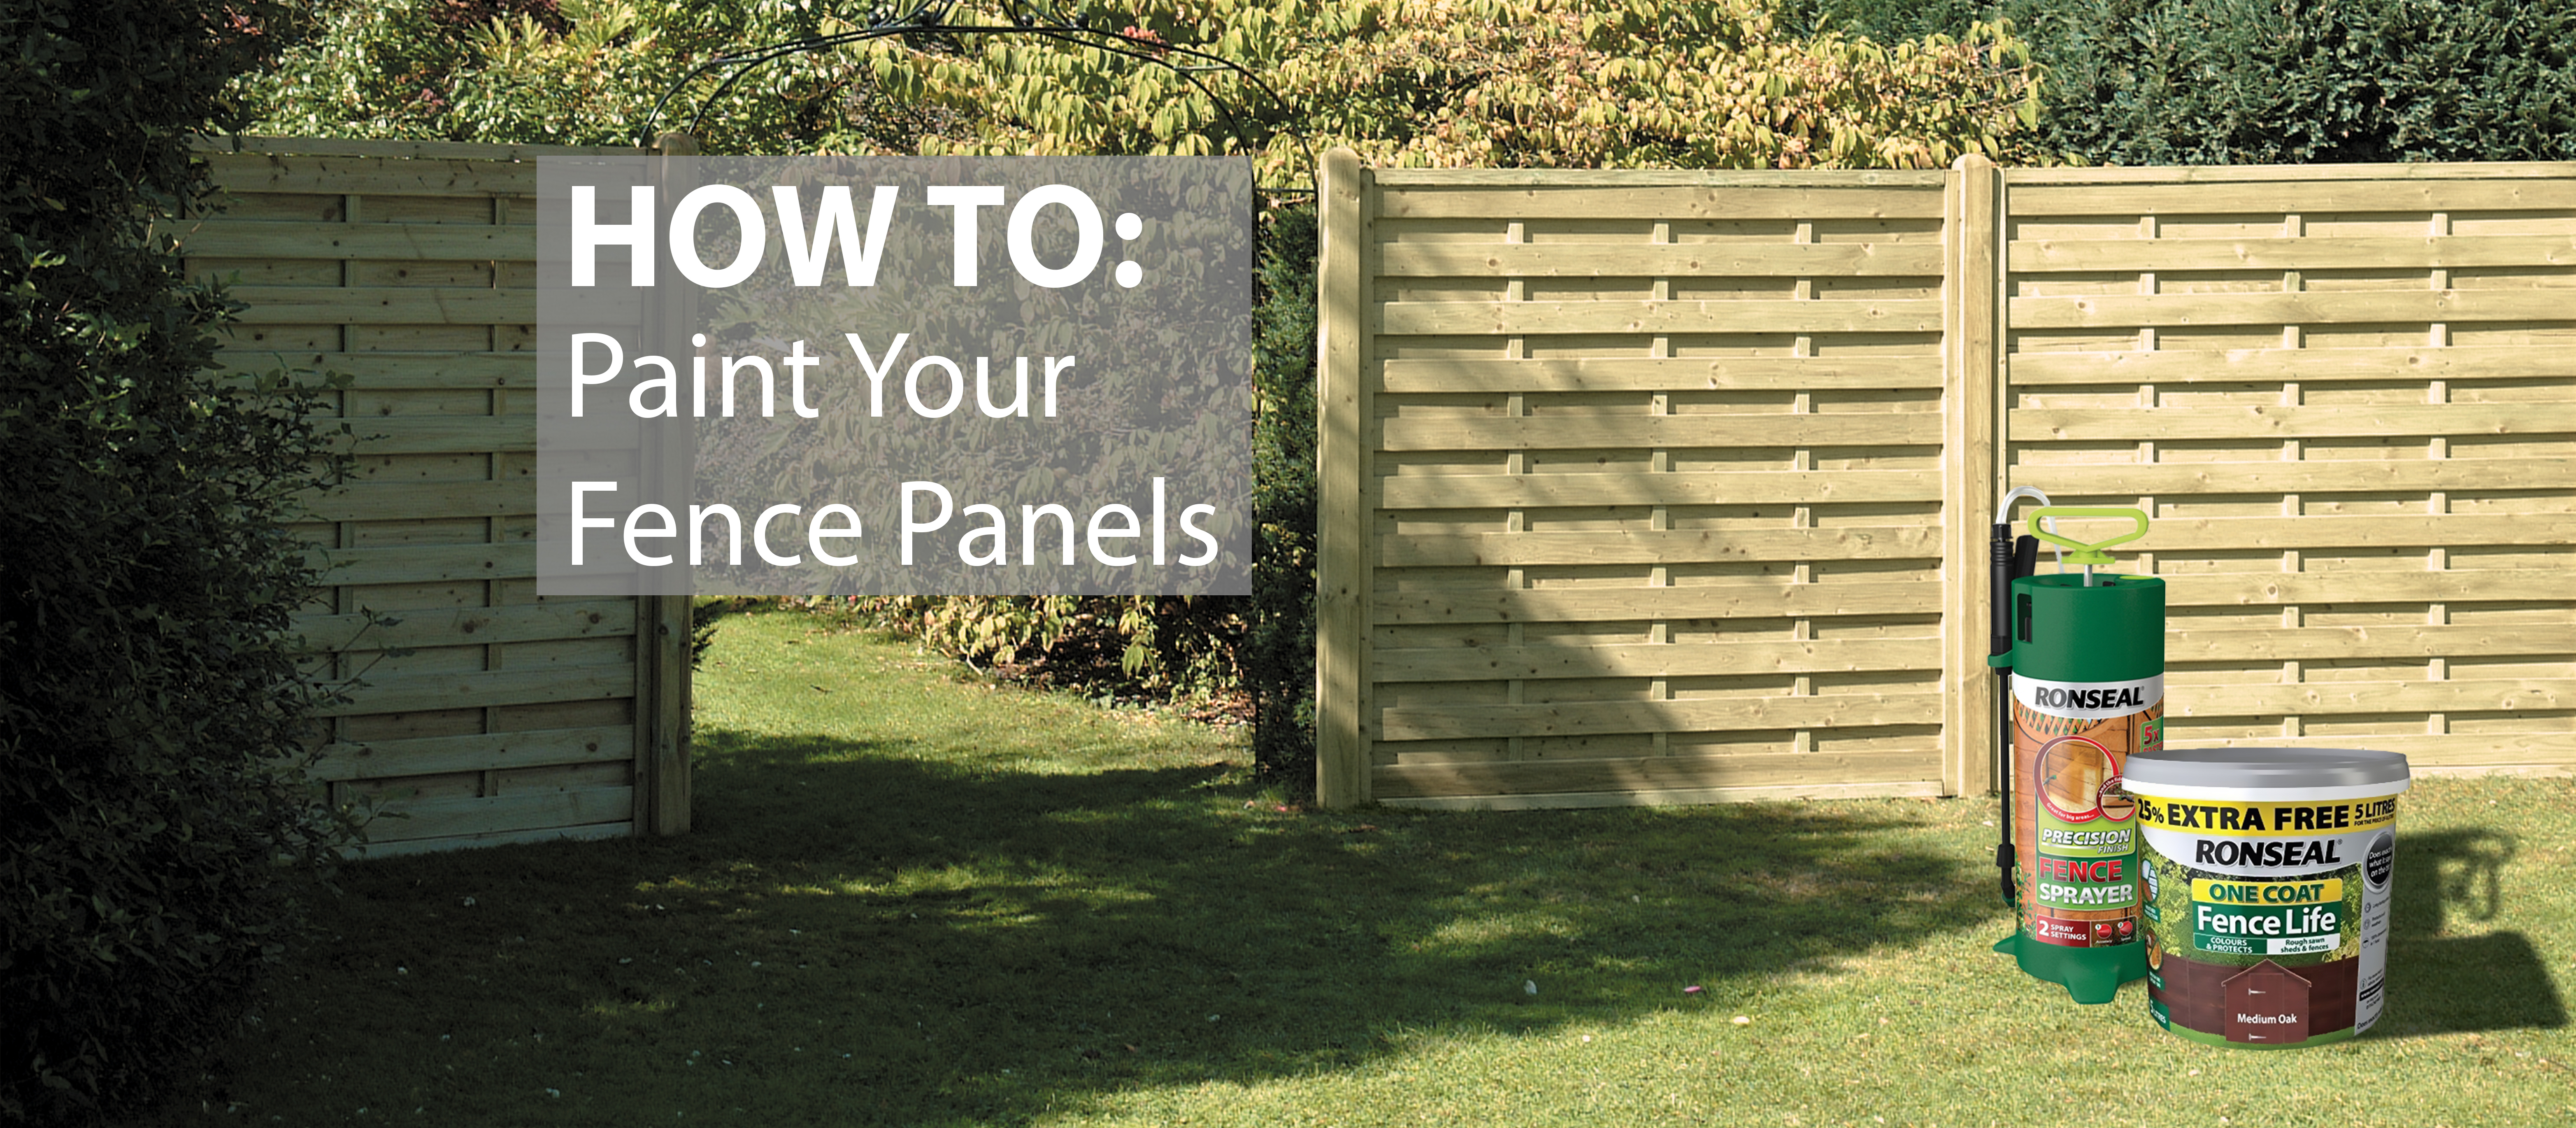 paint-fence-panels